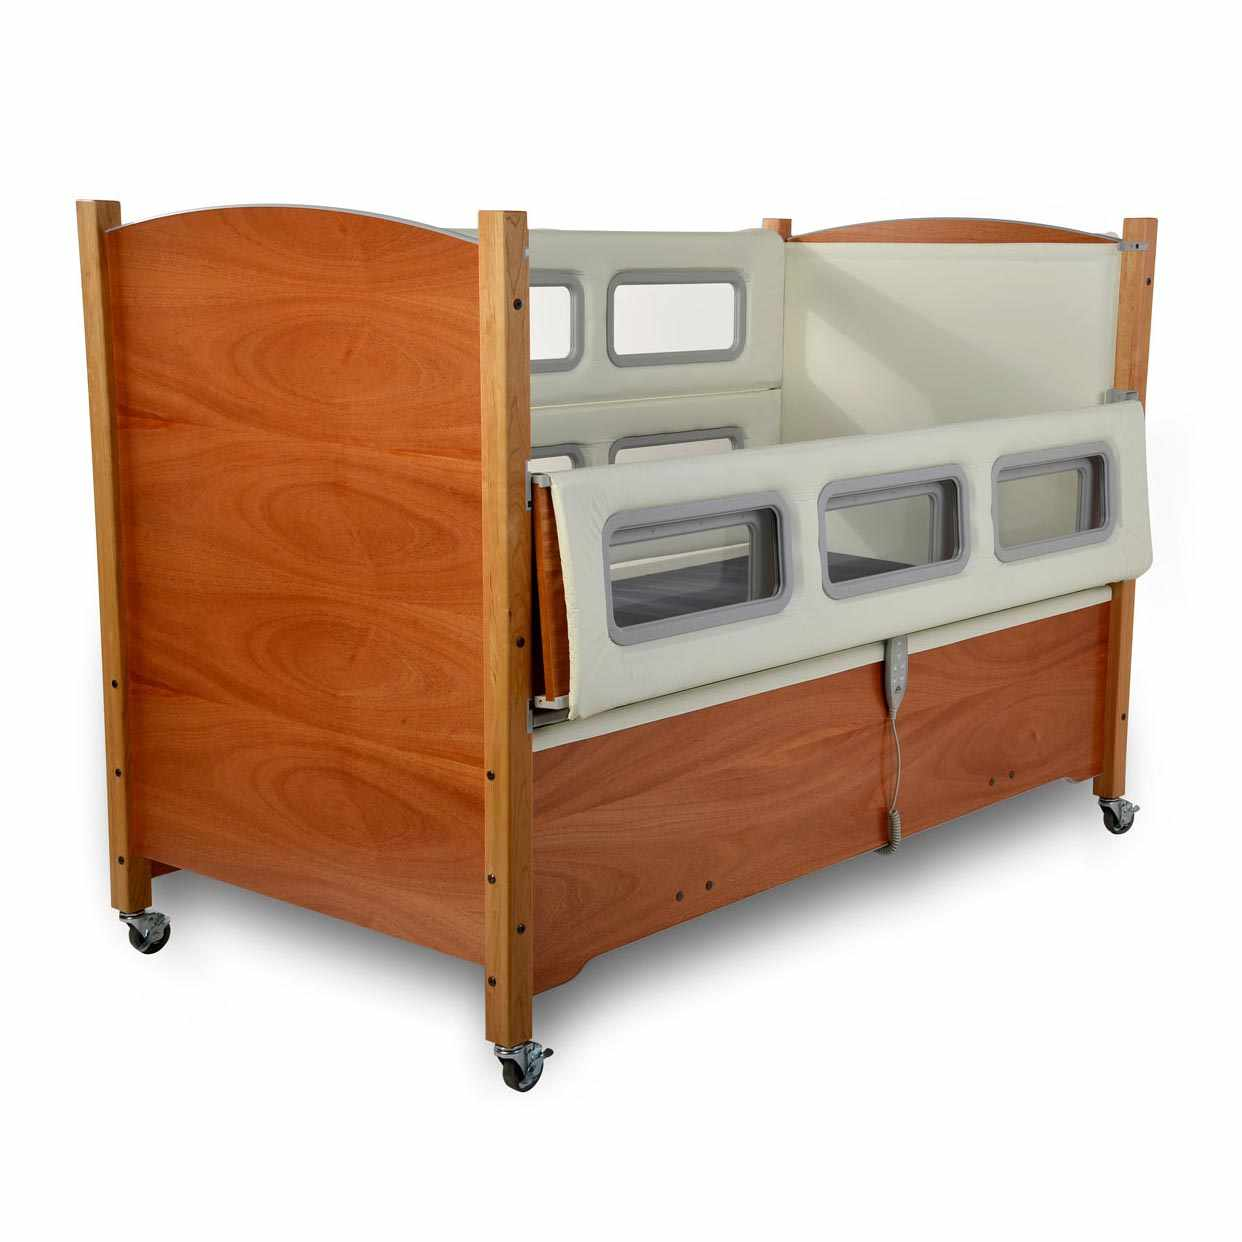 SleepSafer electric tall bed hi-lo with dual view